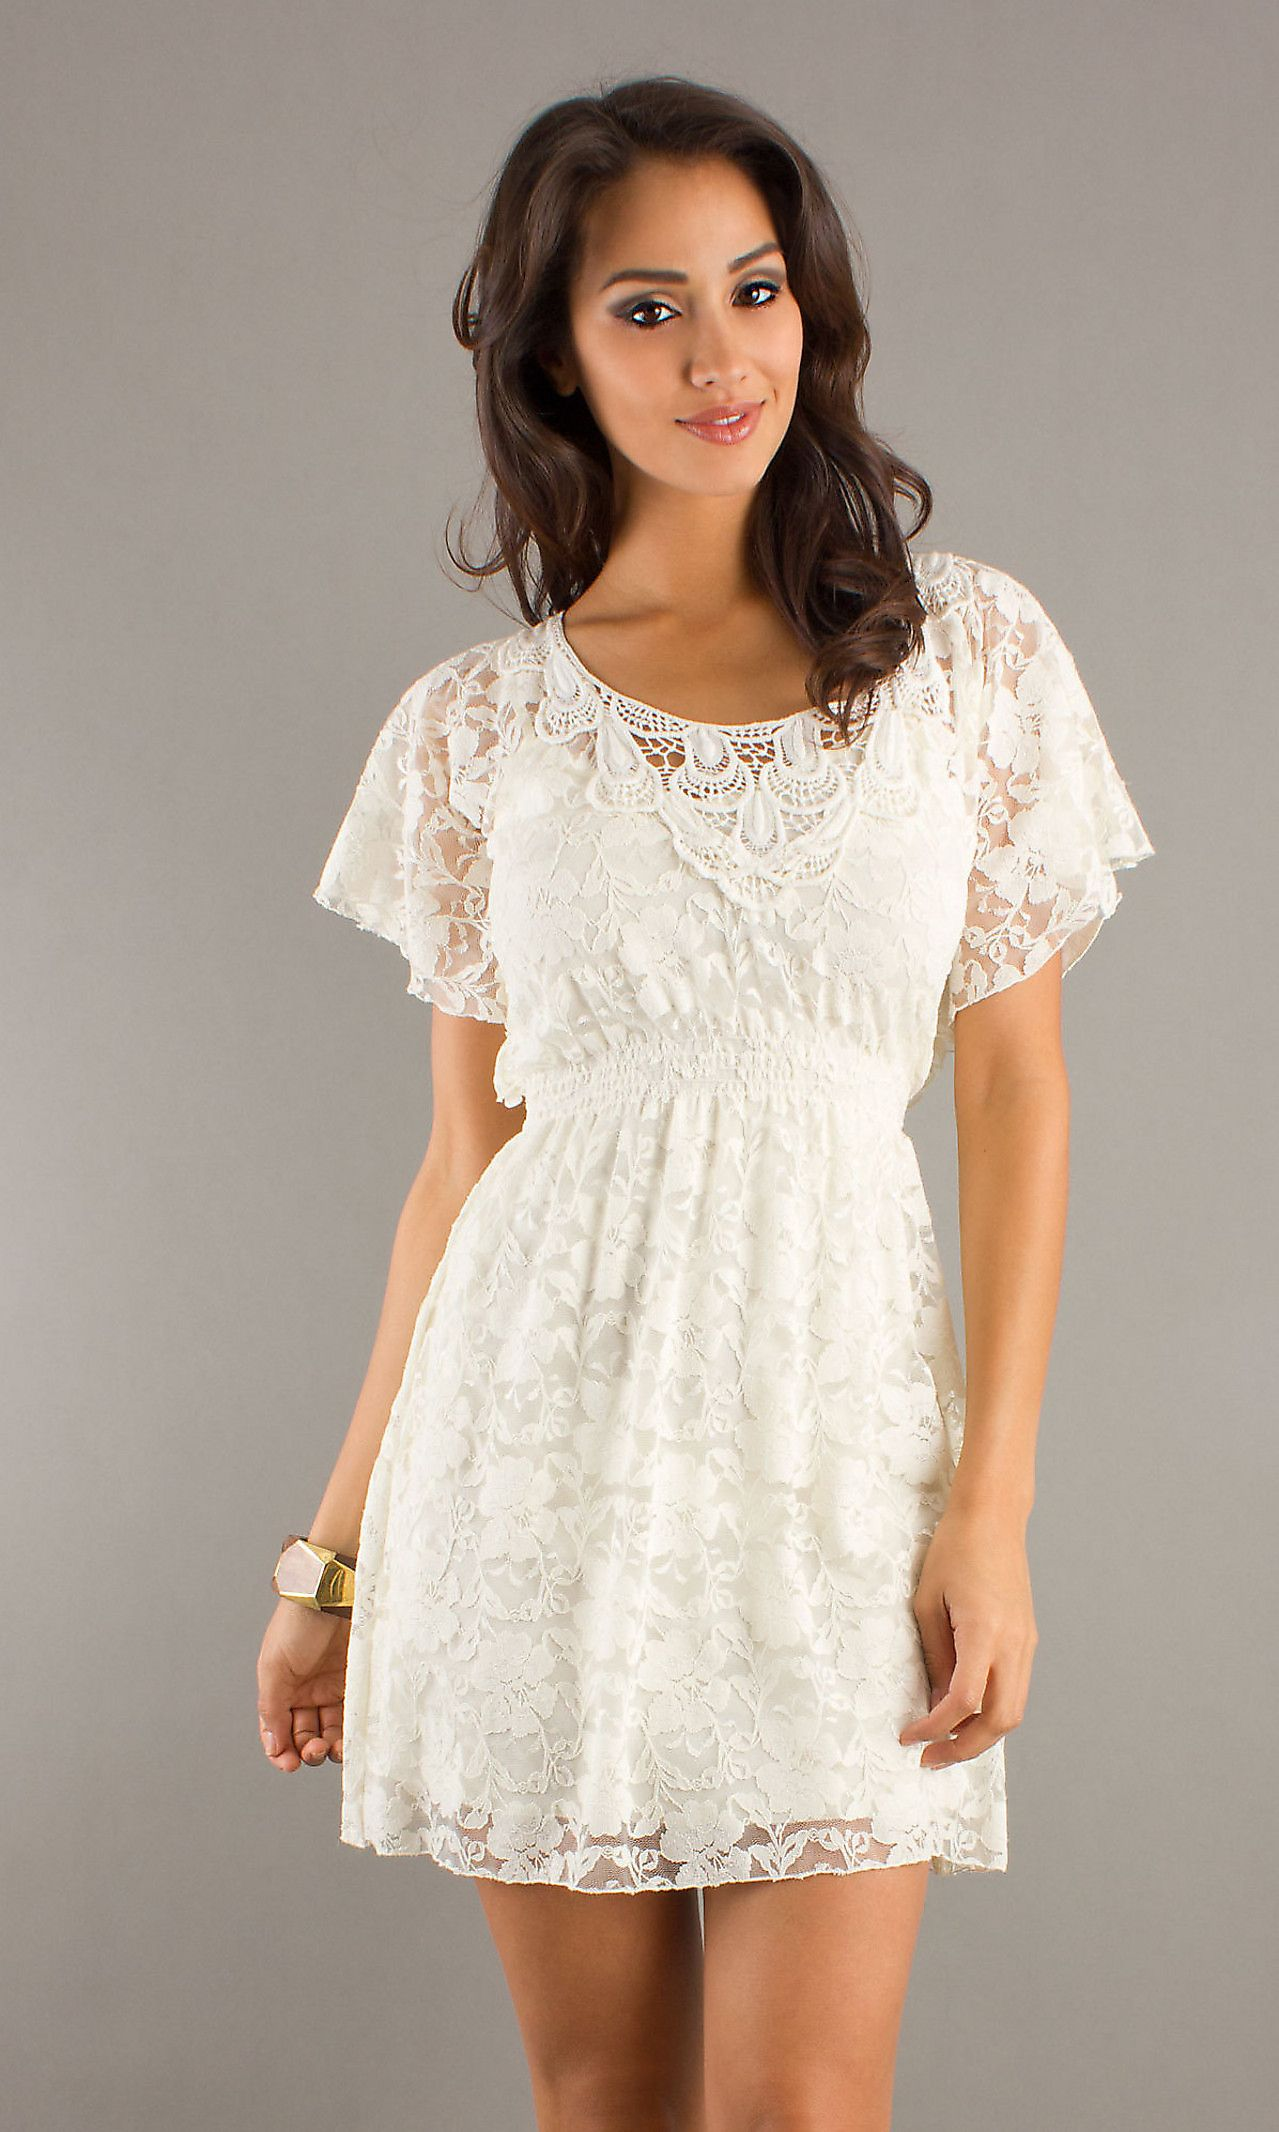 Pretty Lace White Dress Lace Dress With Sleeves Dresses [ 2132 x 1279 Pixel ]